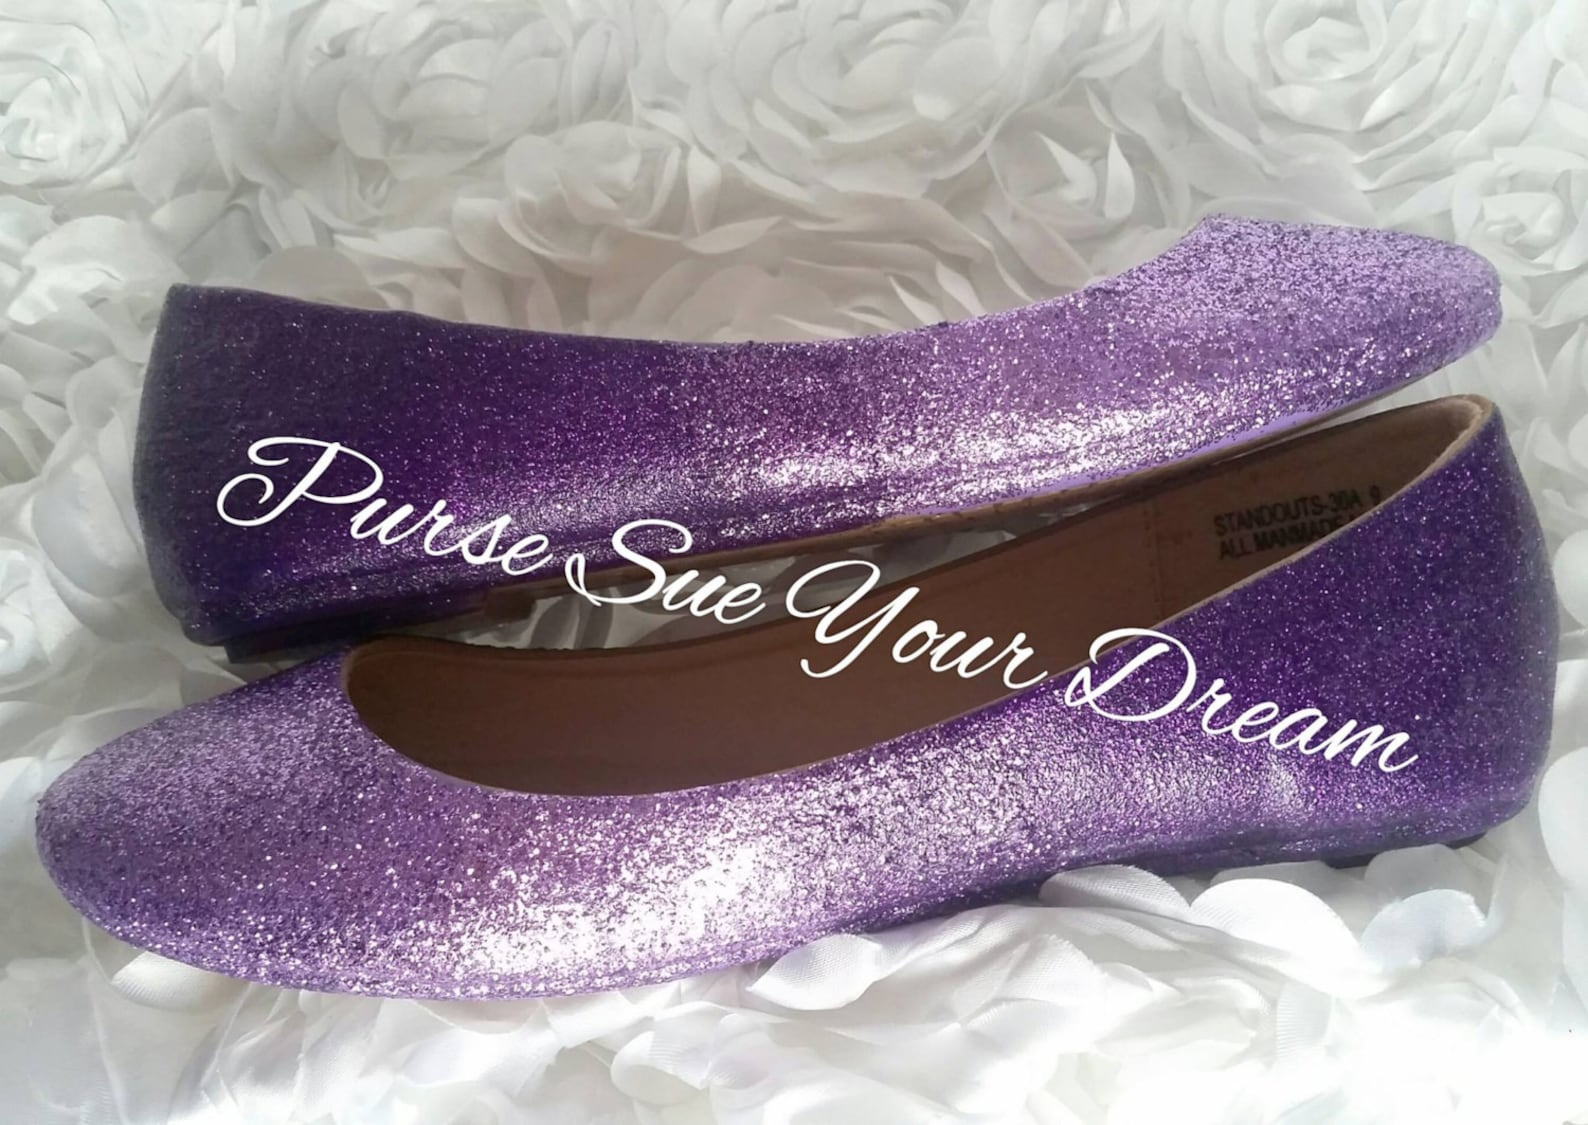 lavender ombre' fade to amethyst purple glitter bridal ballet flat shoes - wedding glitter shoes - wedding ballet flat shoes